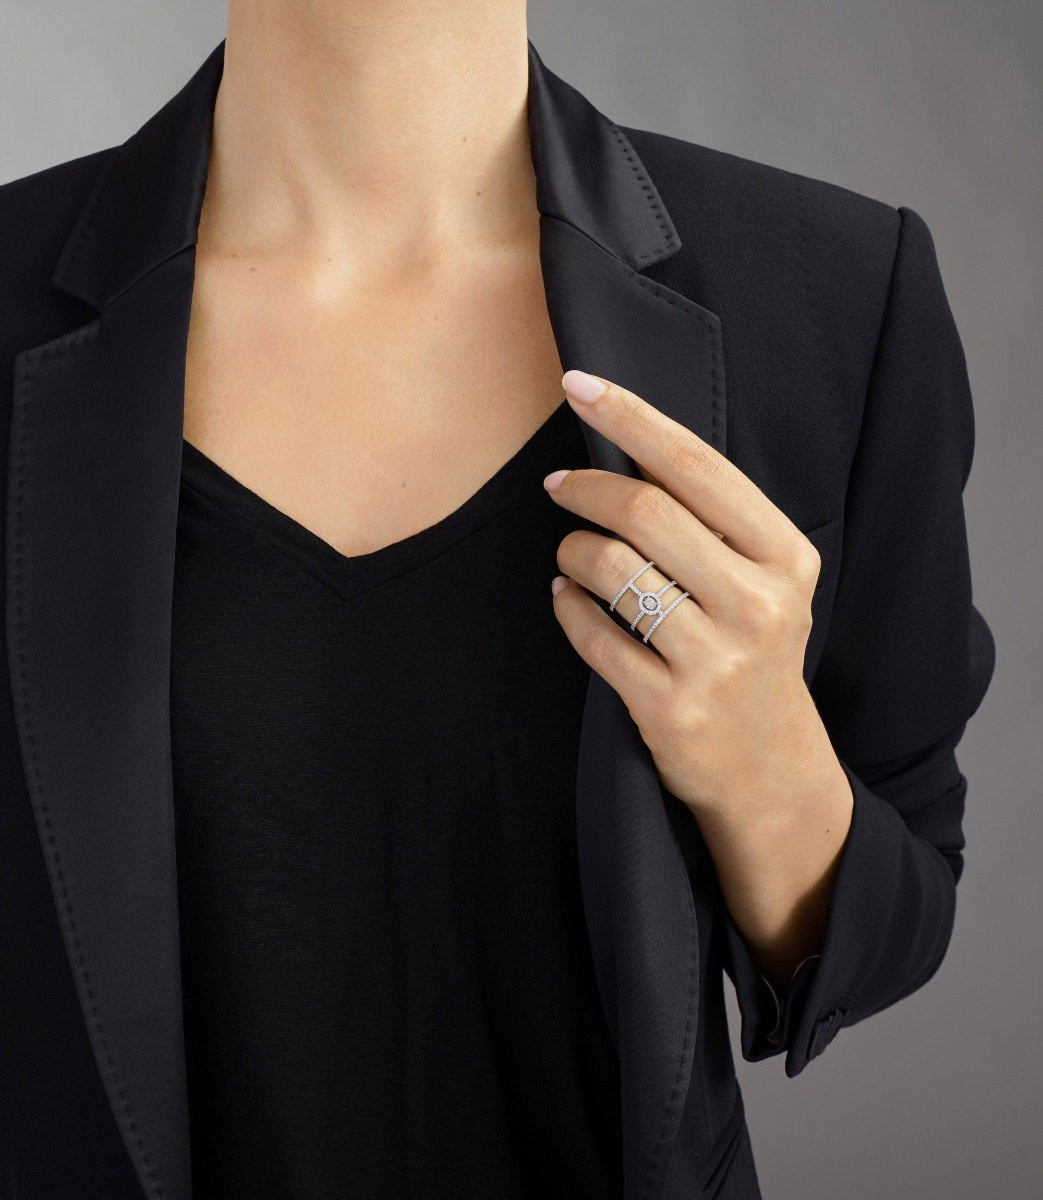 Messika Glam'Azone 3 Row Pavé Diamond Ring in 18K Gold on model